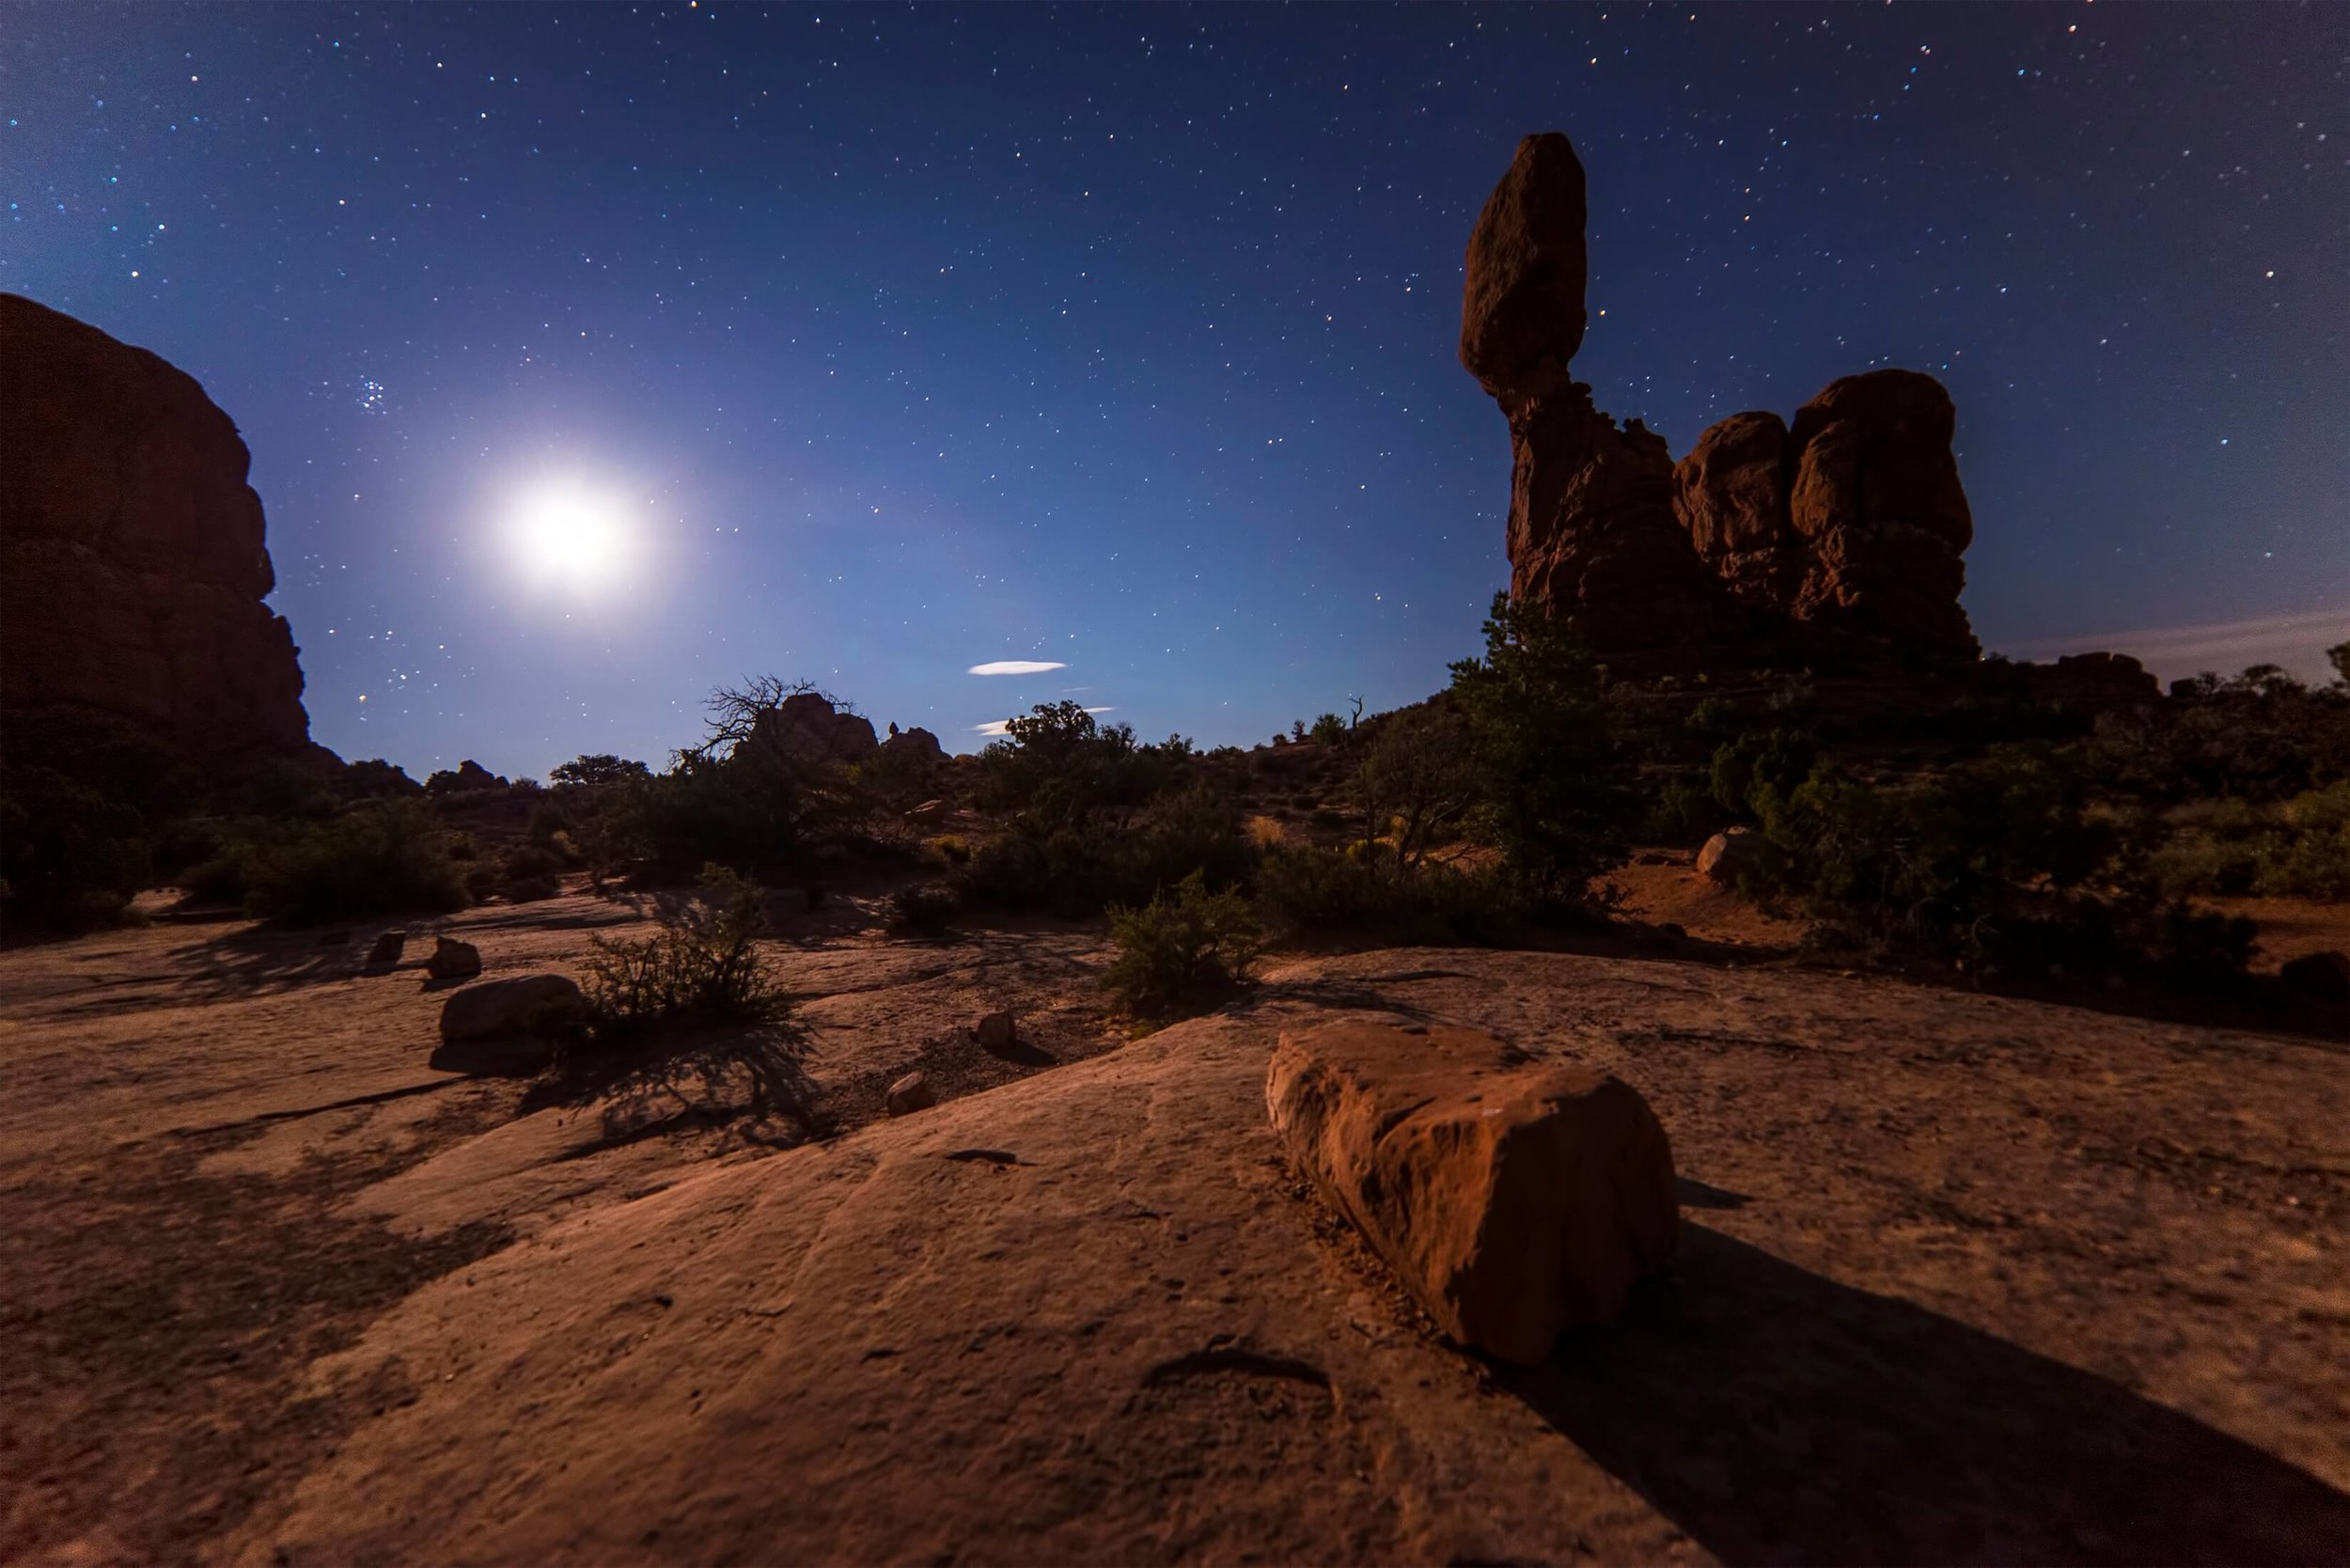 Desert in Moonlight -  Thomas Shellberg